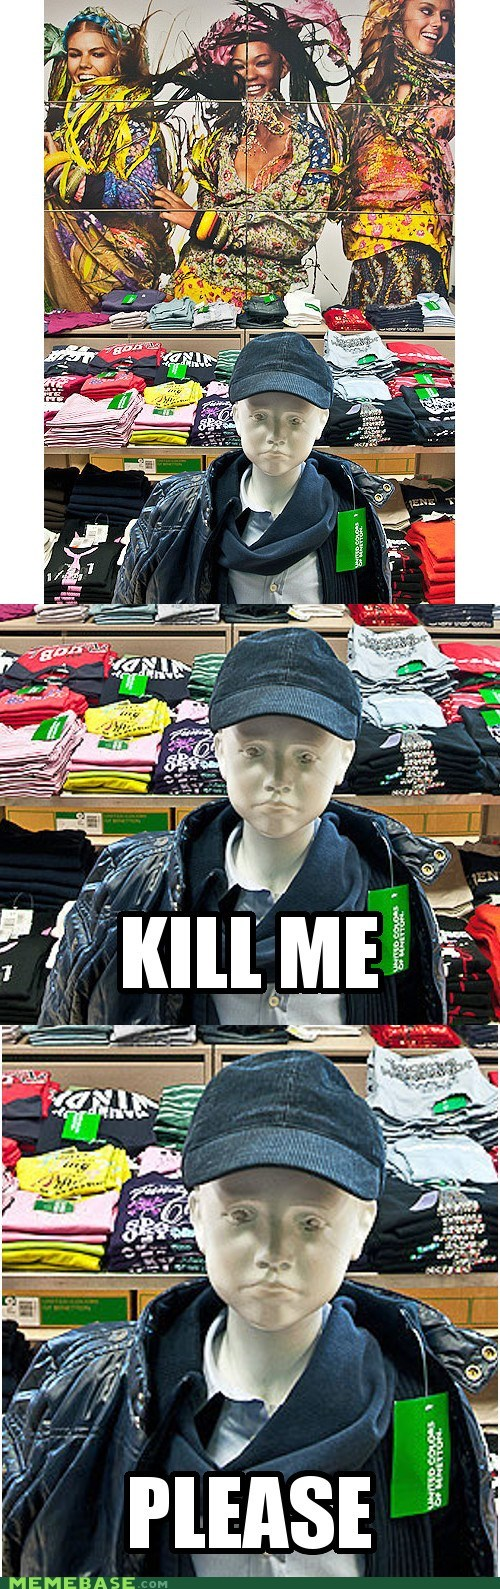 kill me now mannequin cloths mercy store - 6812037888